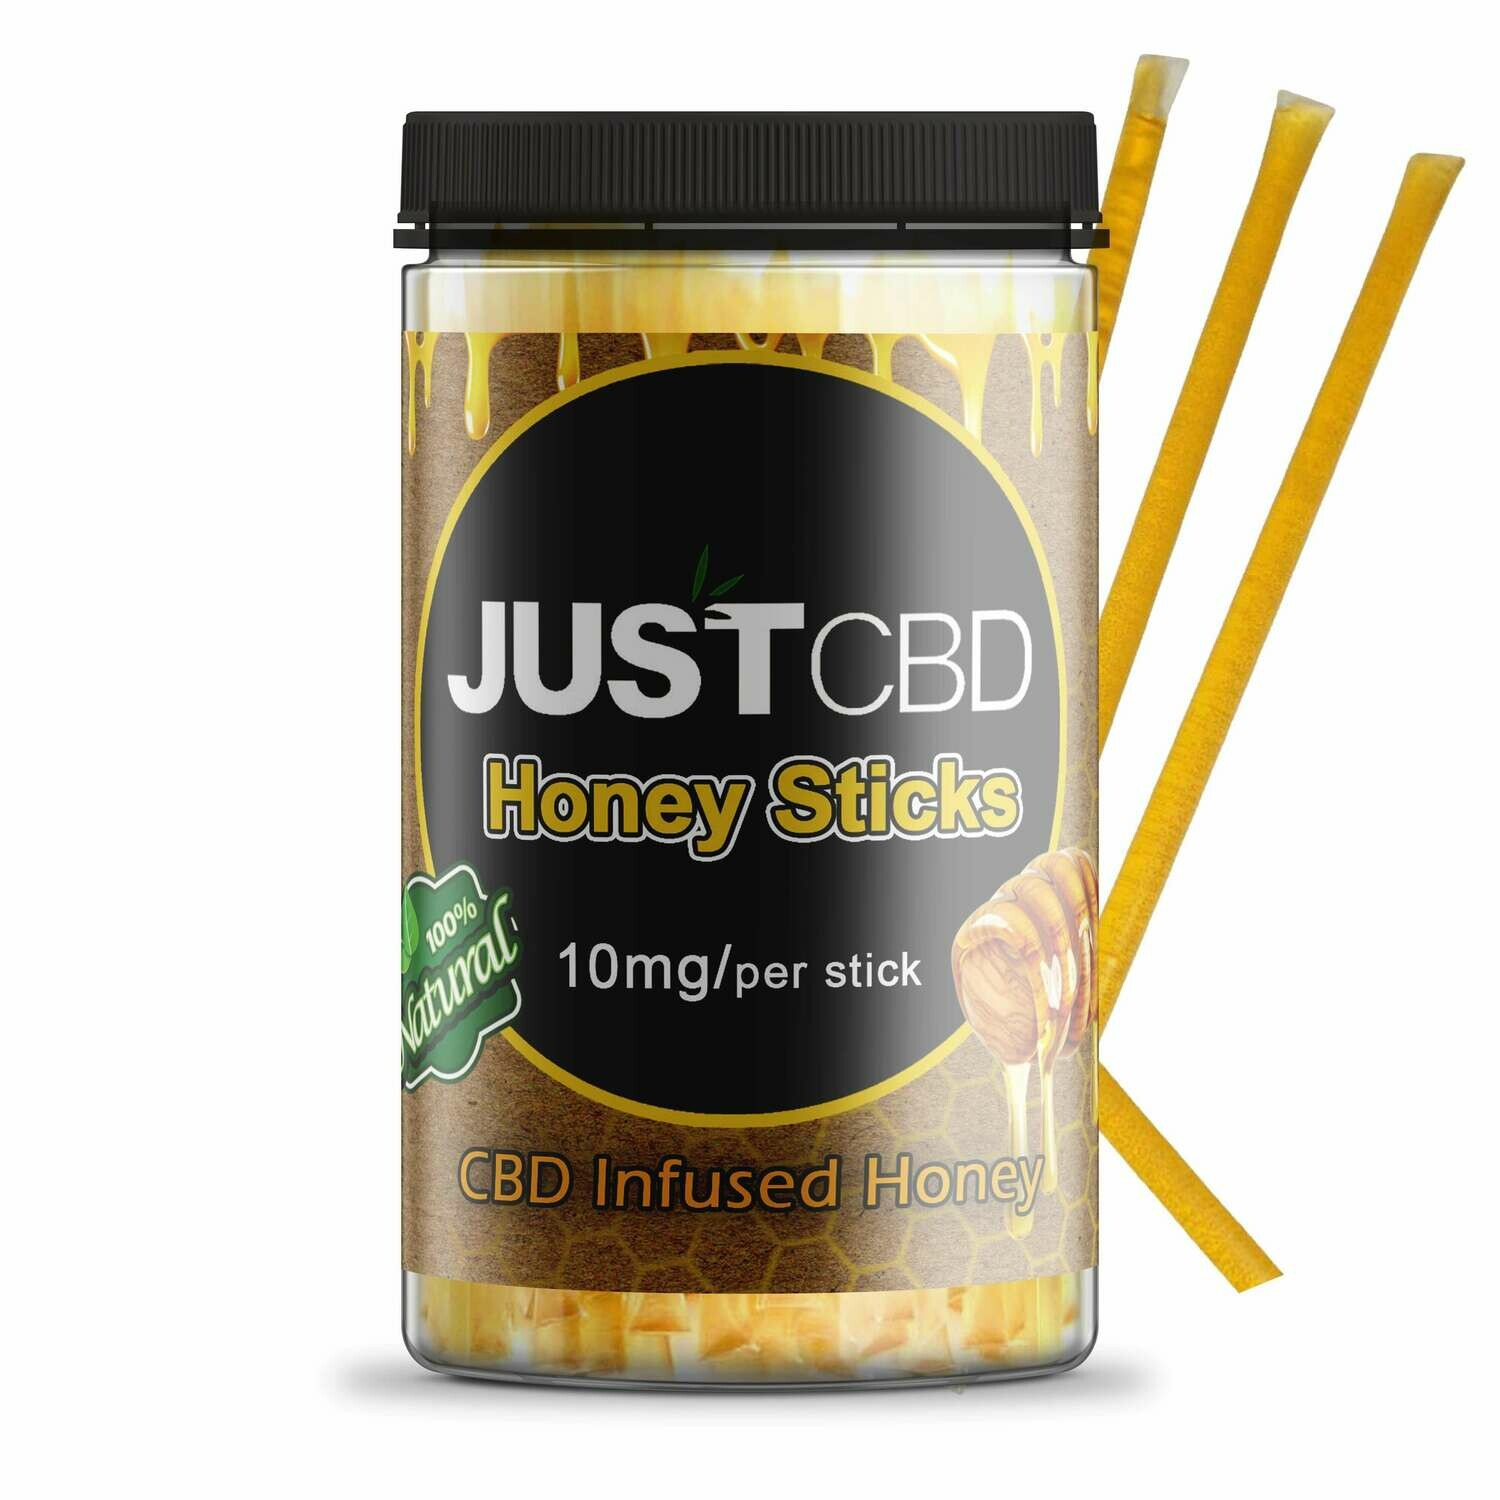 JustCBD Honey Sticks - Original & Cinnamon